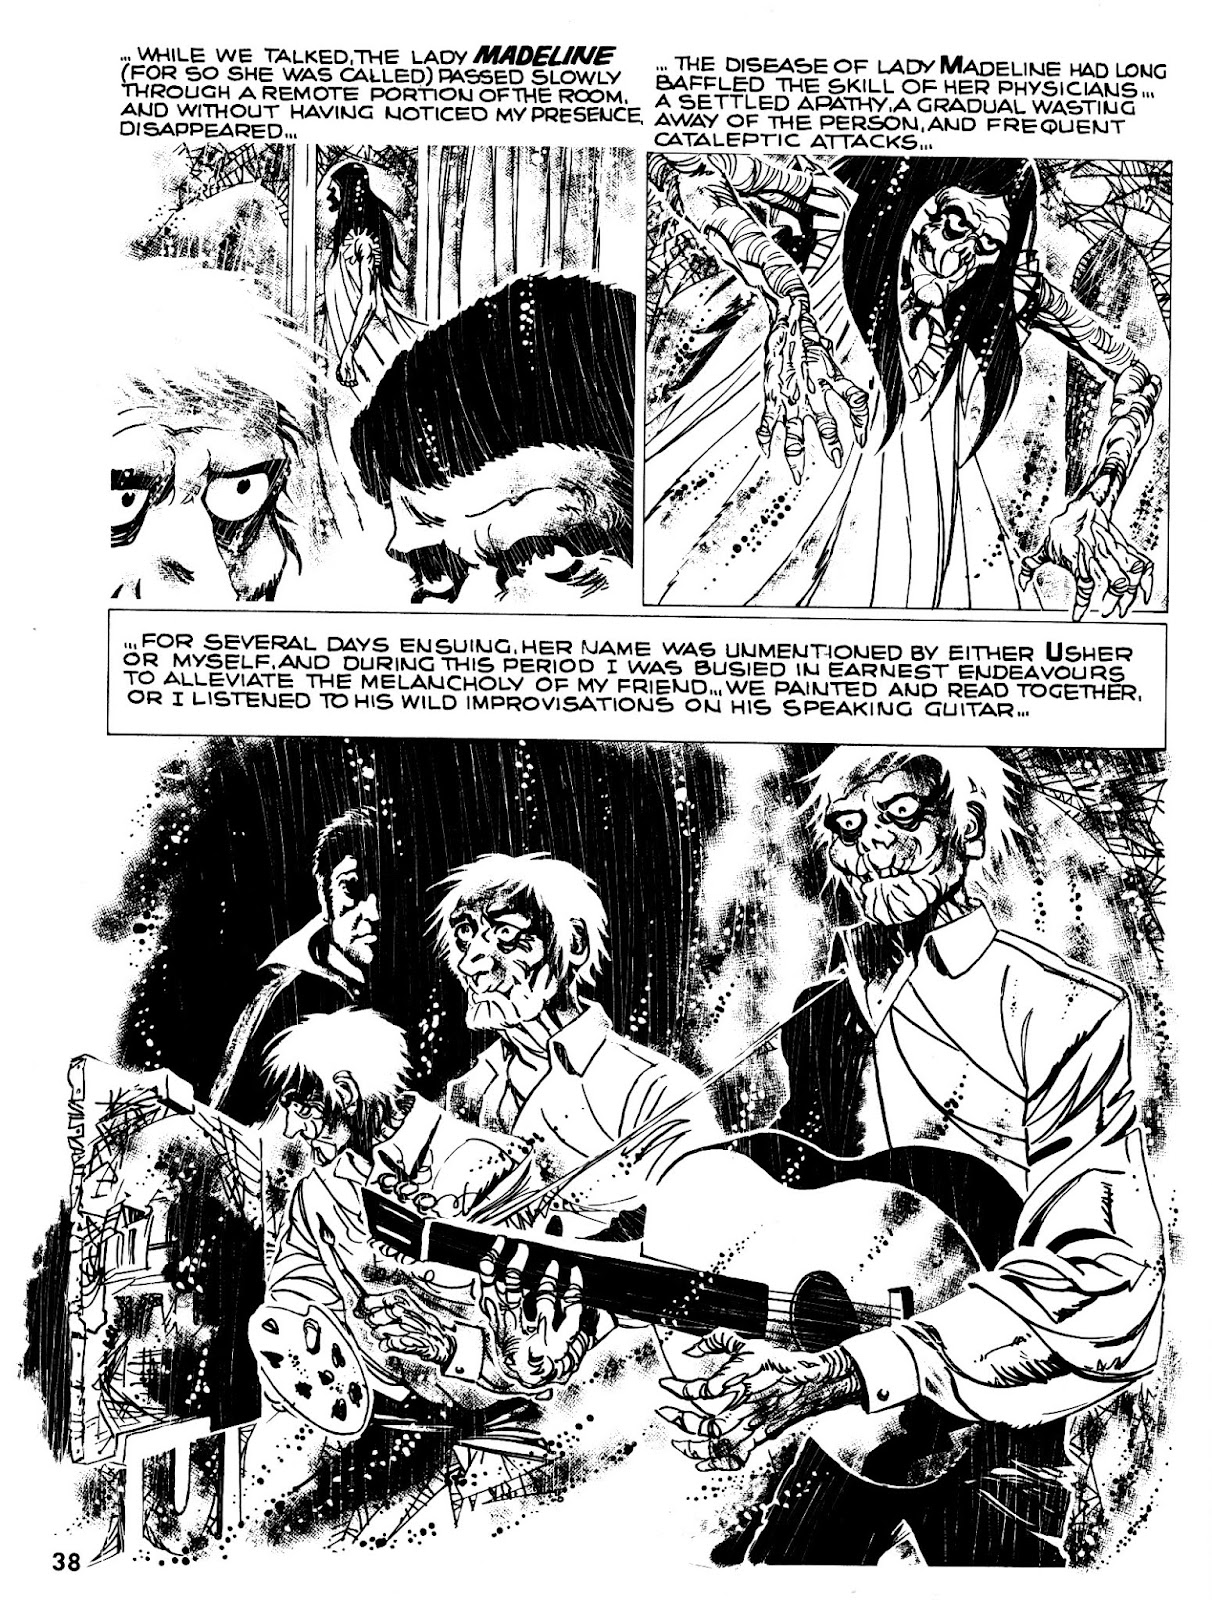 Scream (1973) issue 3 - Page 38